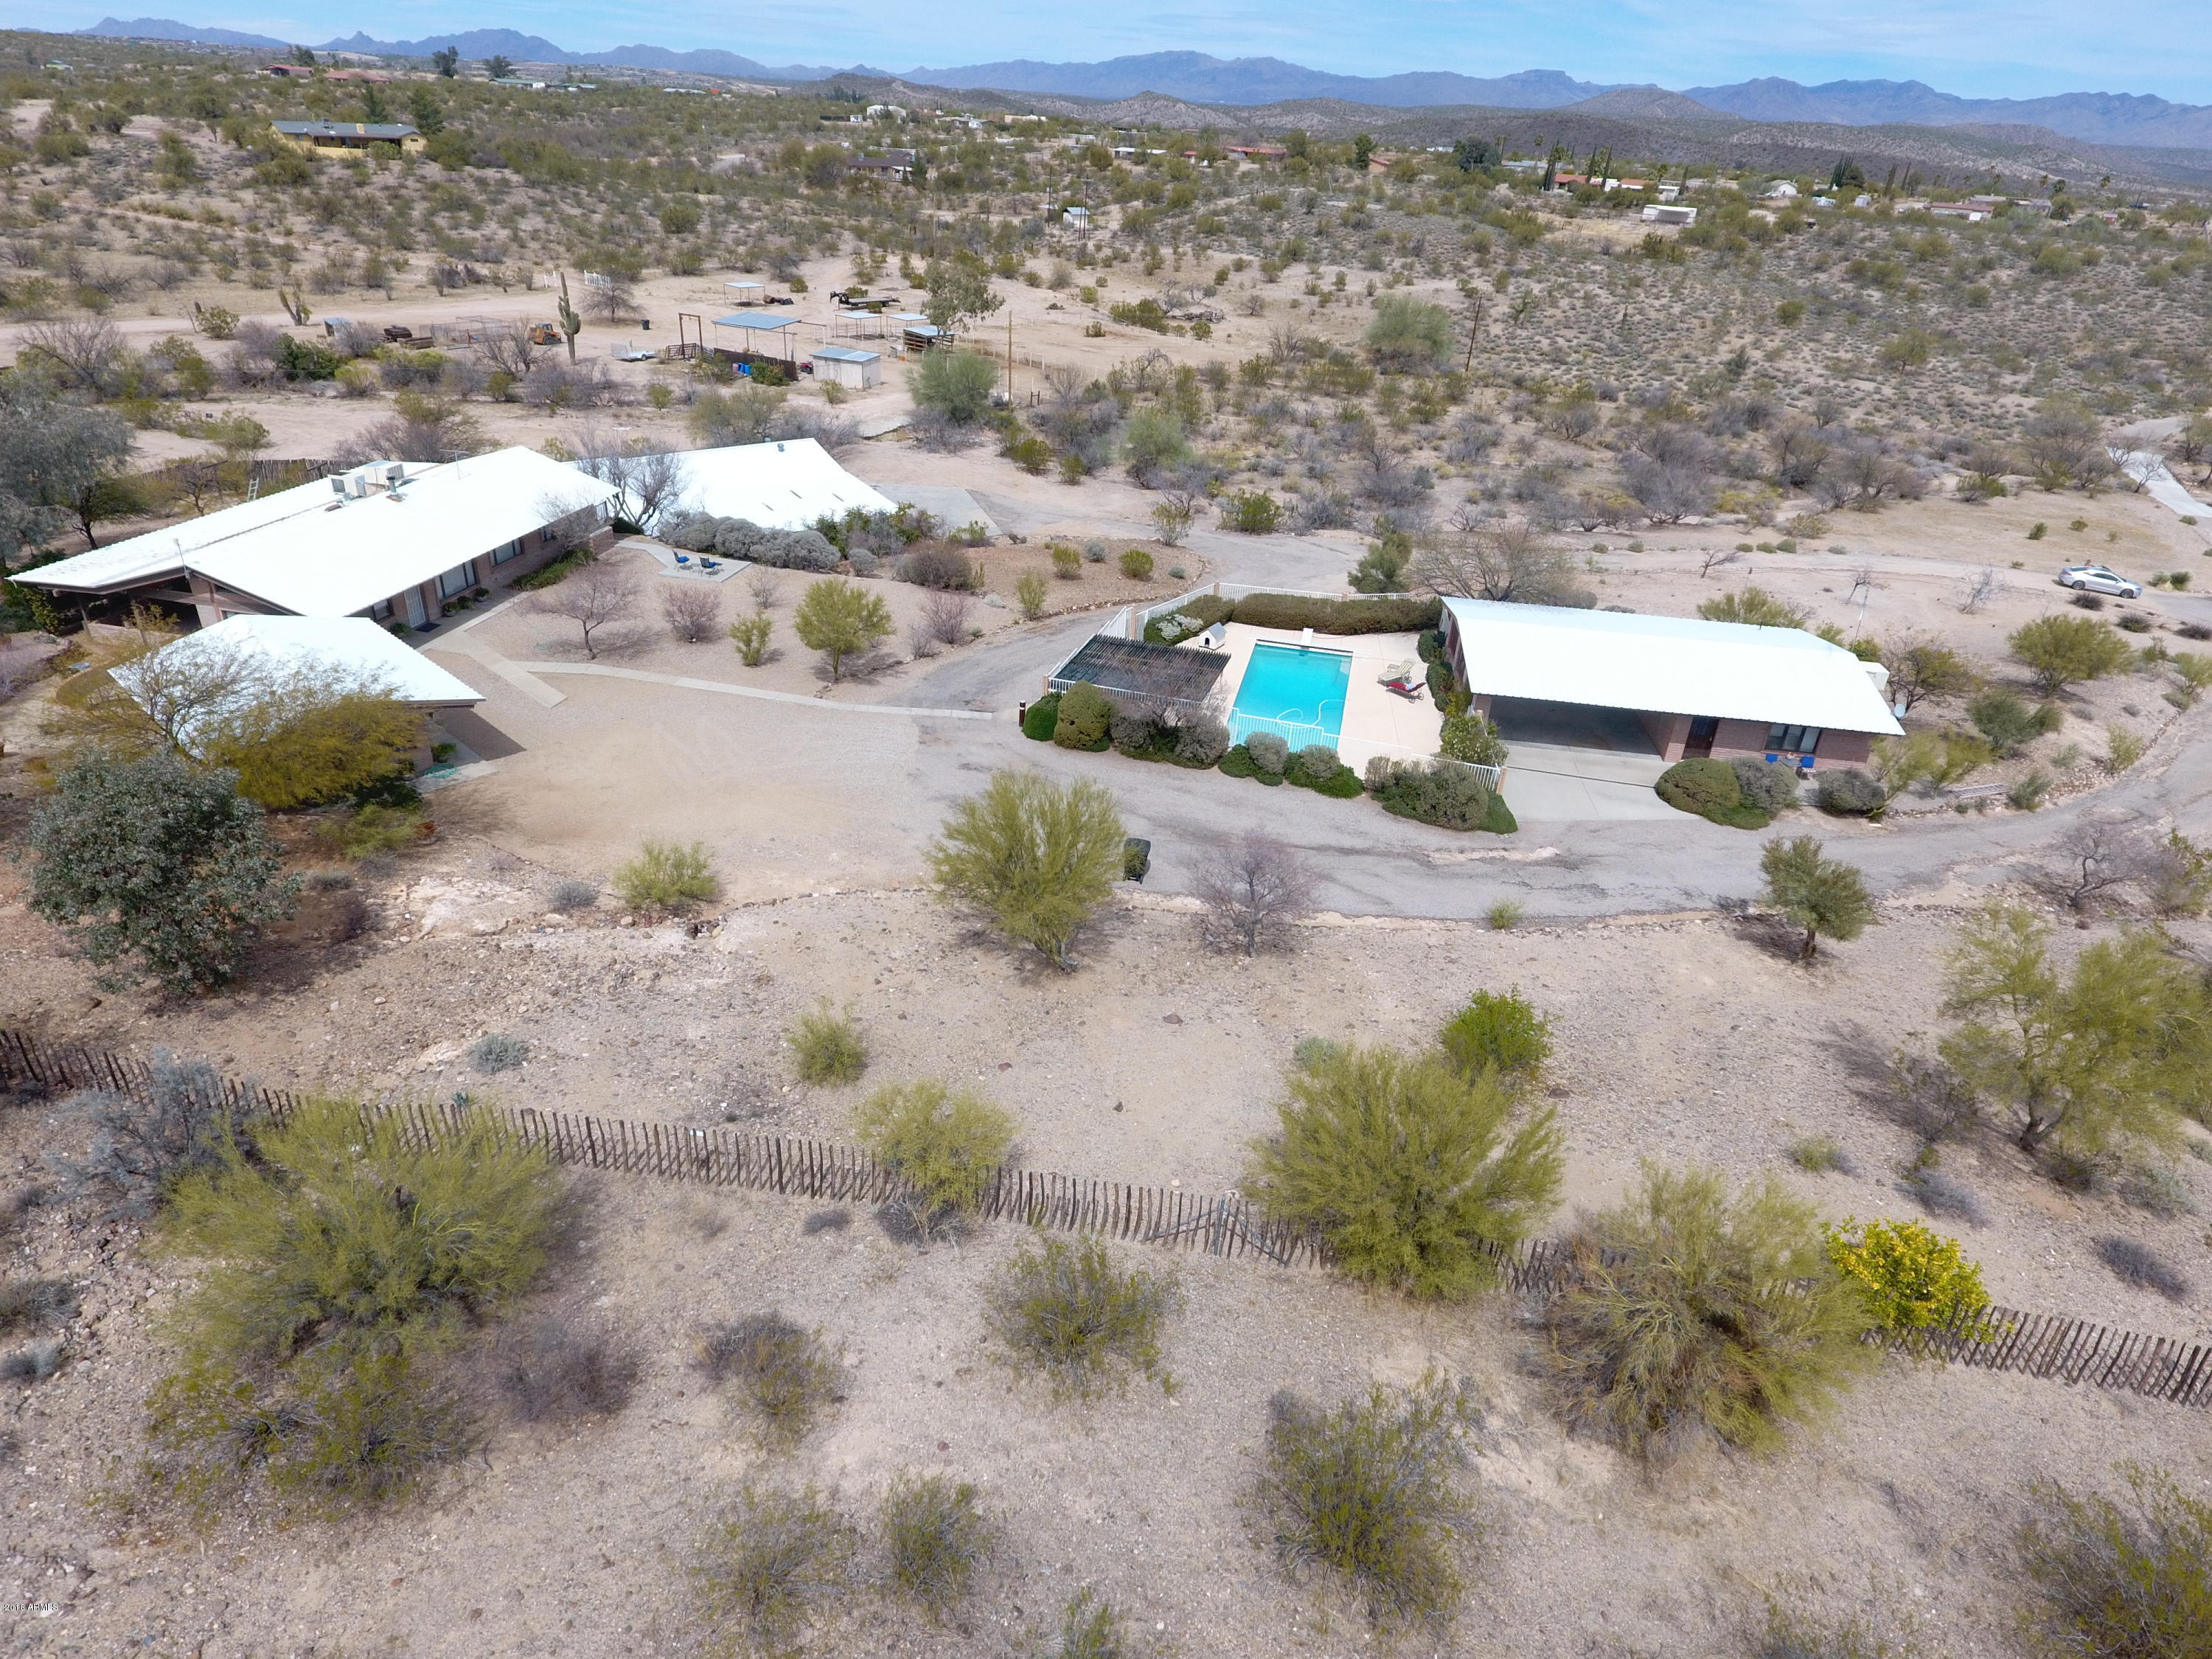 MLS 5739157 37780 W HEARTLAND Way, Wickenburg, AZ 85390 Wickenburg AZ Private Pool